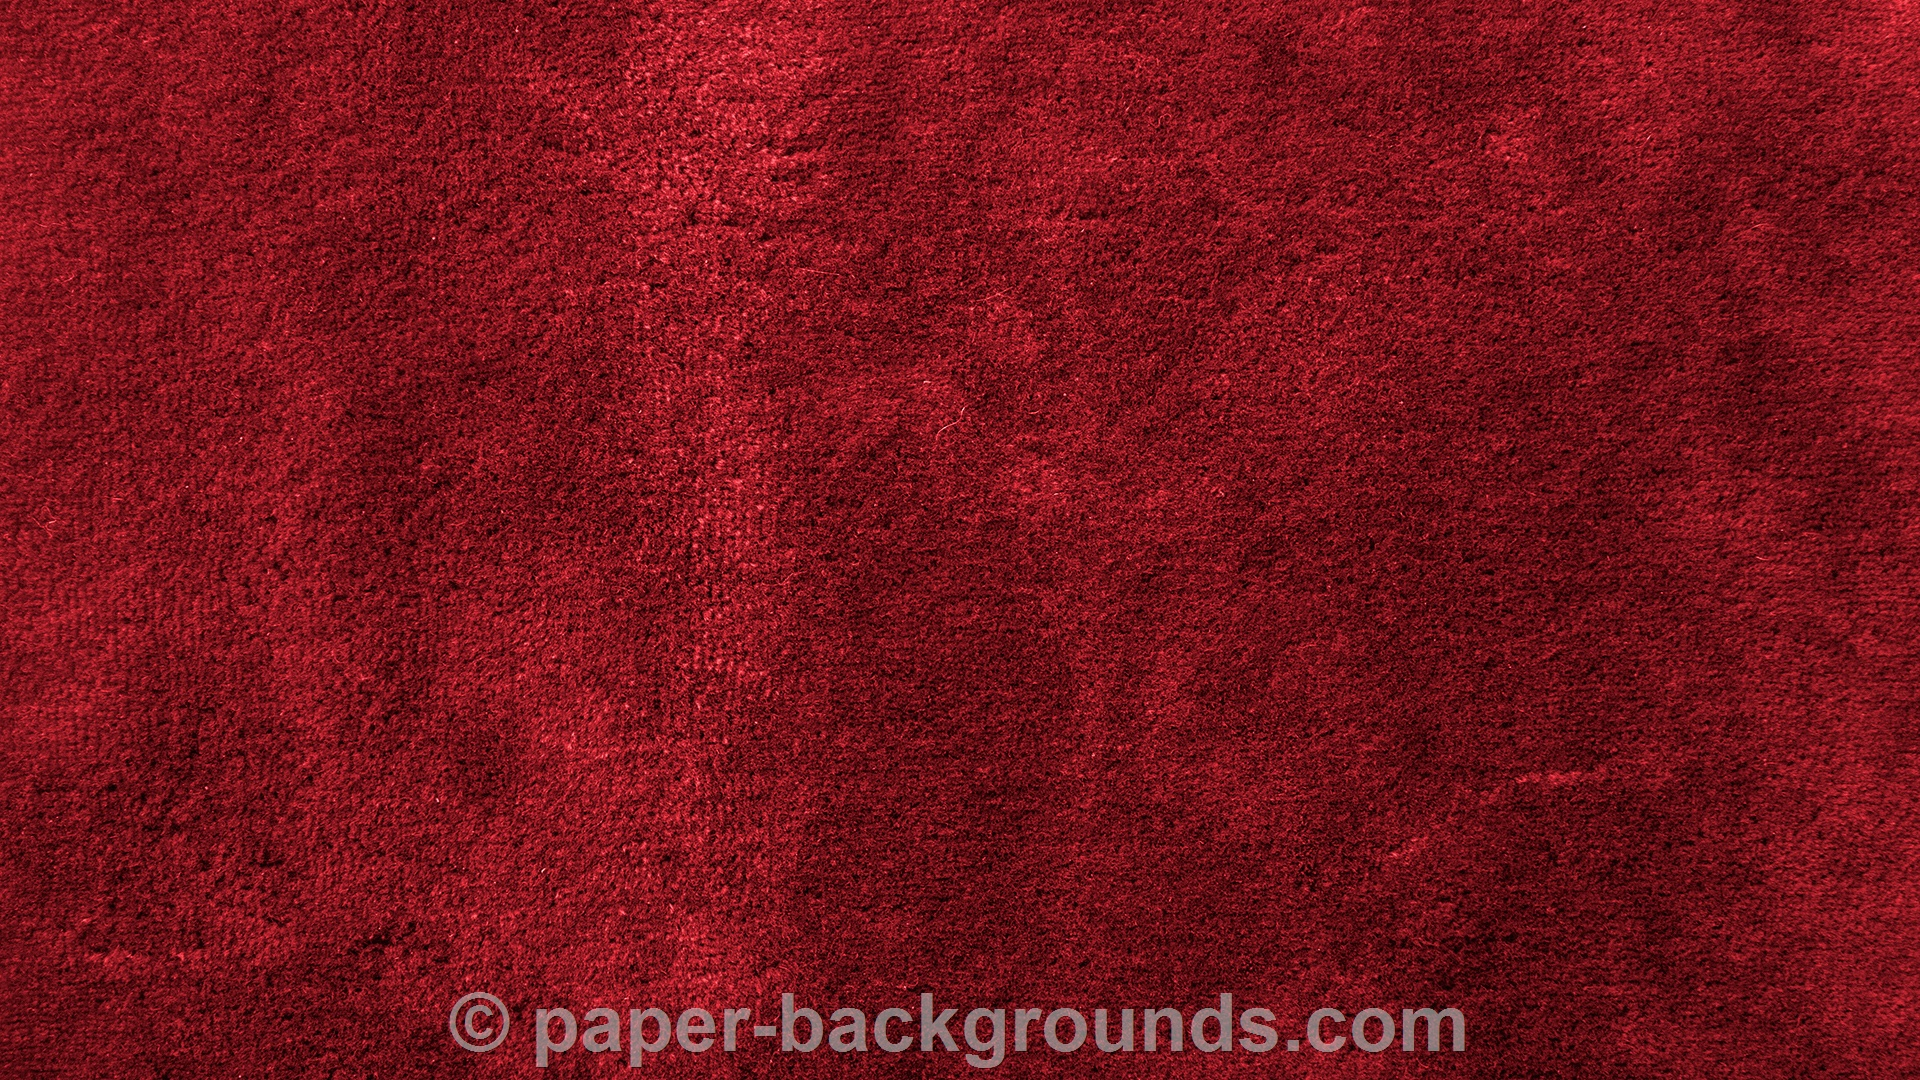 Paper Backgrounds | Red Velvet Texture Background HD